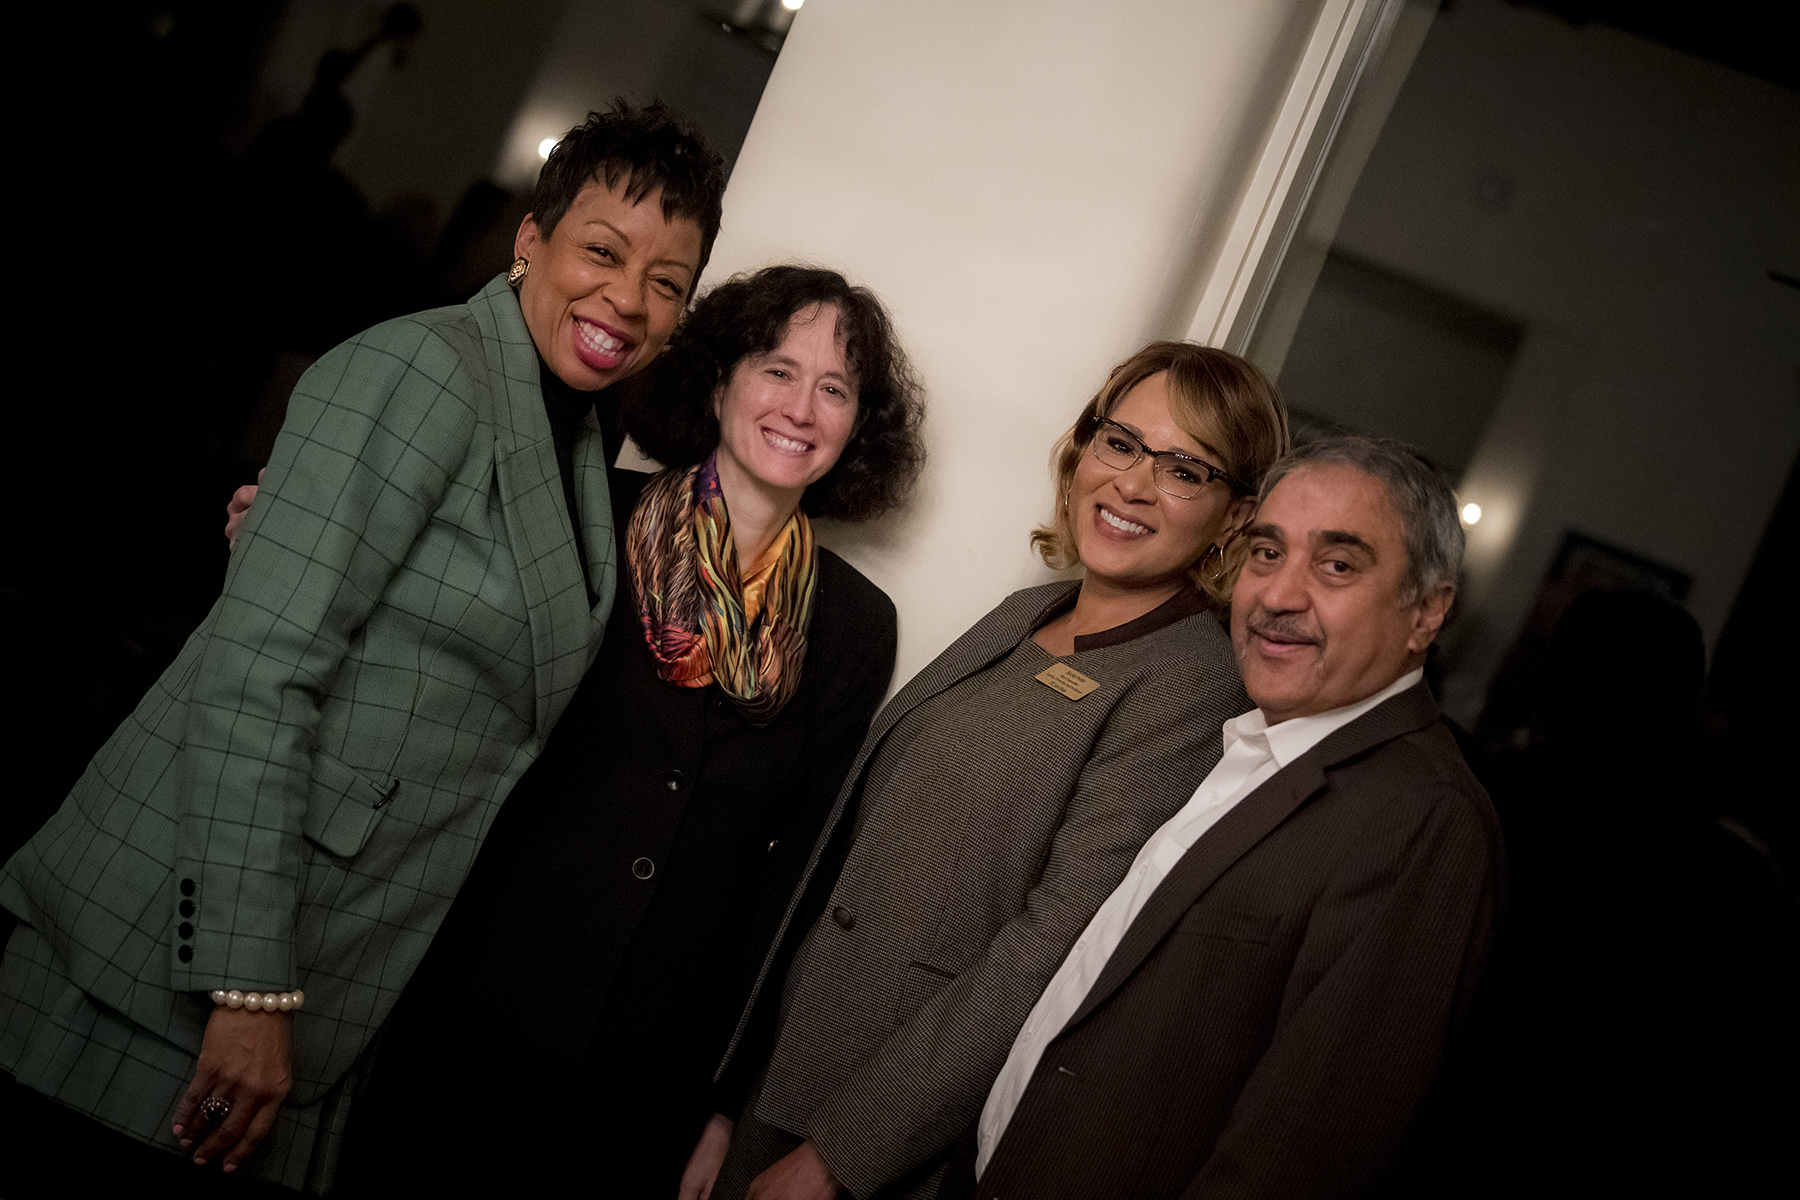 Dr. Helen Griffith, Dr. Elizabeth Simmons, Dr. Becky Pettit, Dr. Pradeep Khosla at an event honoring Dr. Griffith